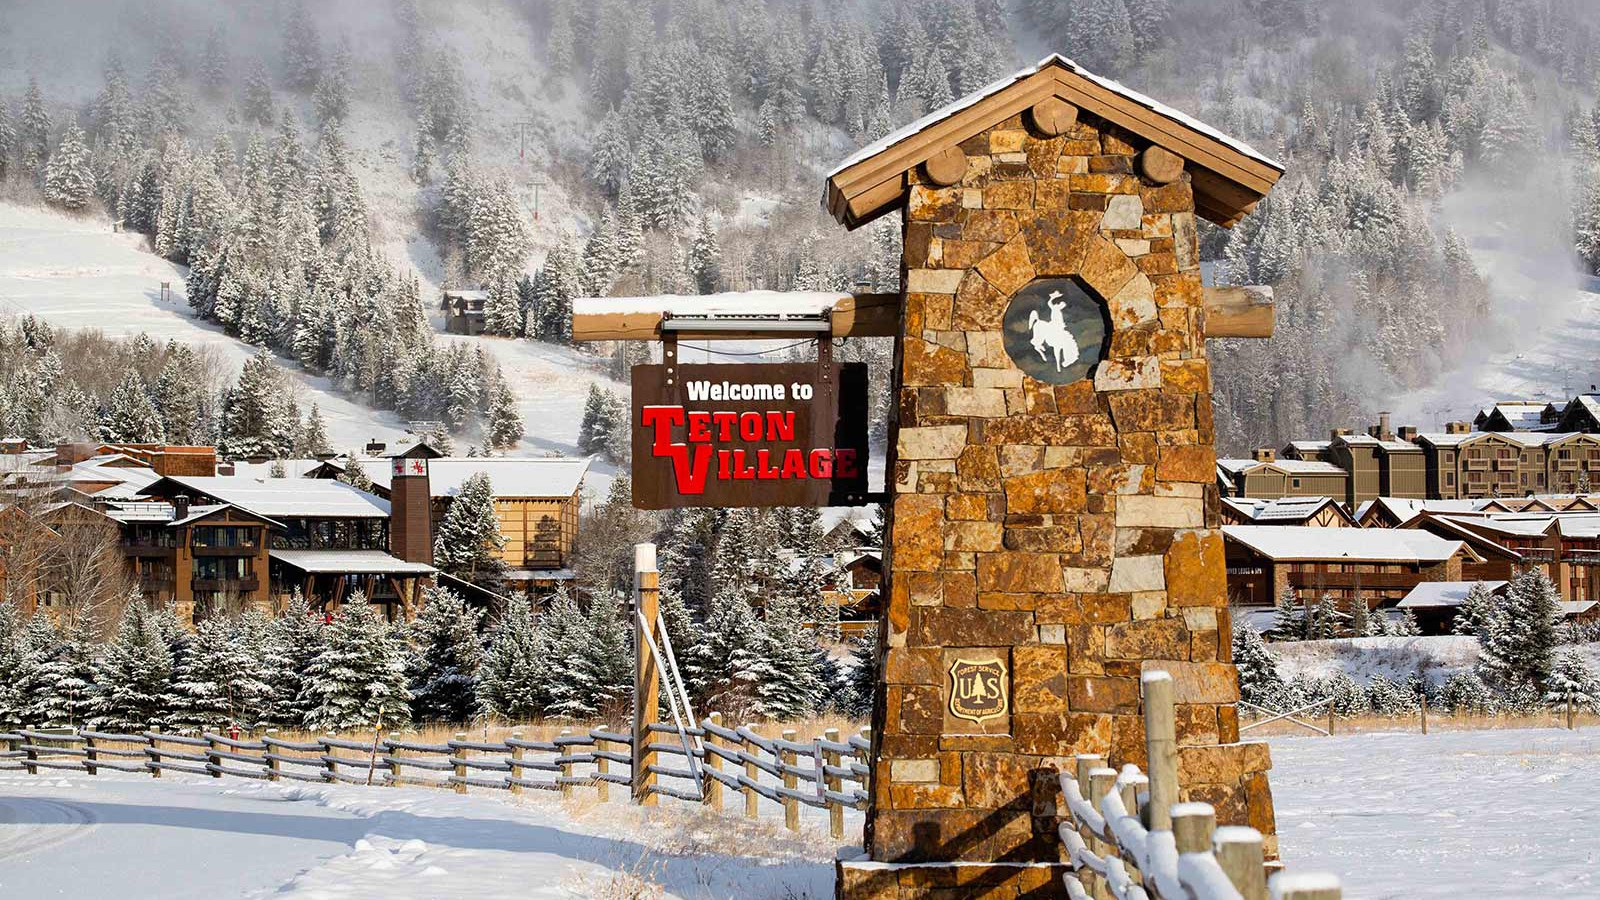 Jackson Hole Ski Resort, USA - Welcome sign